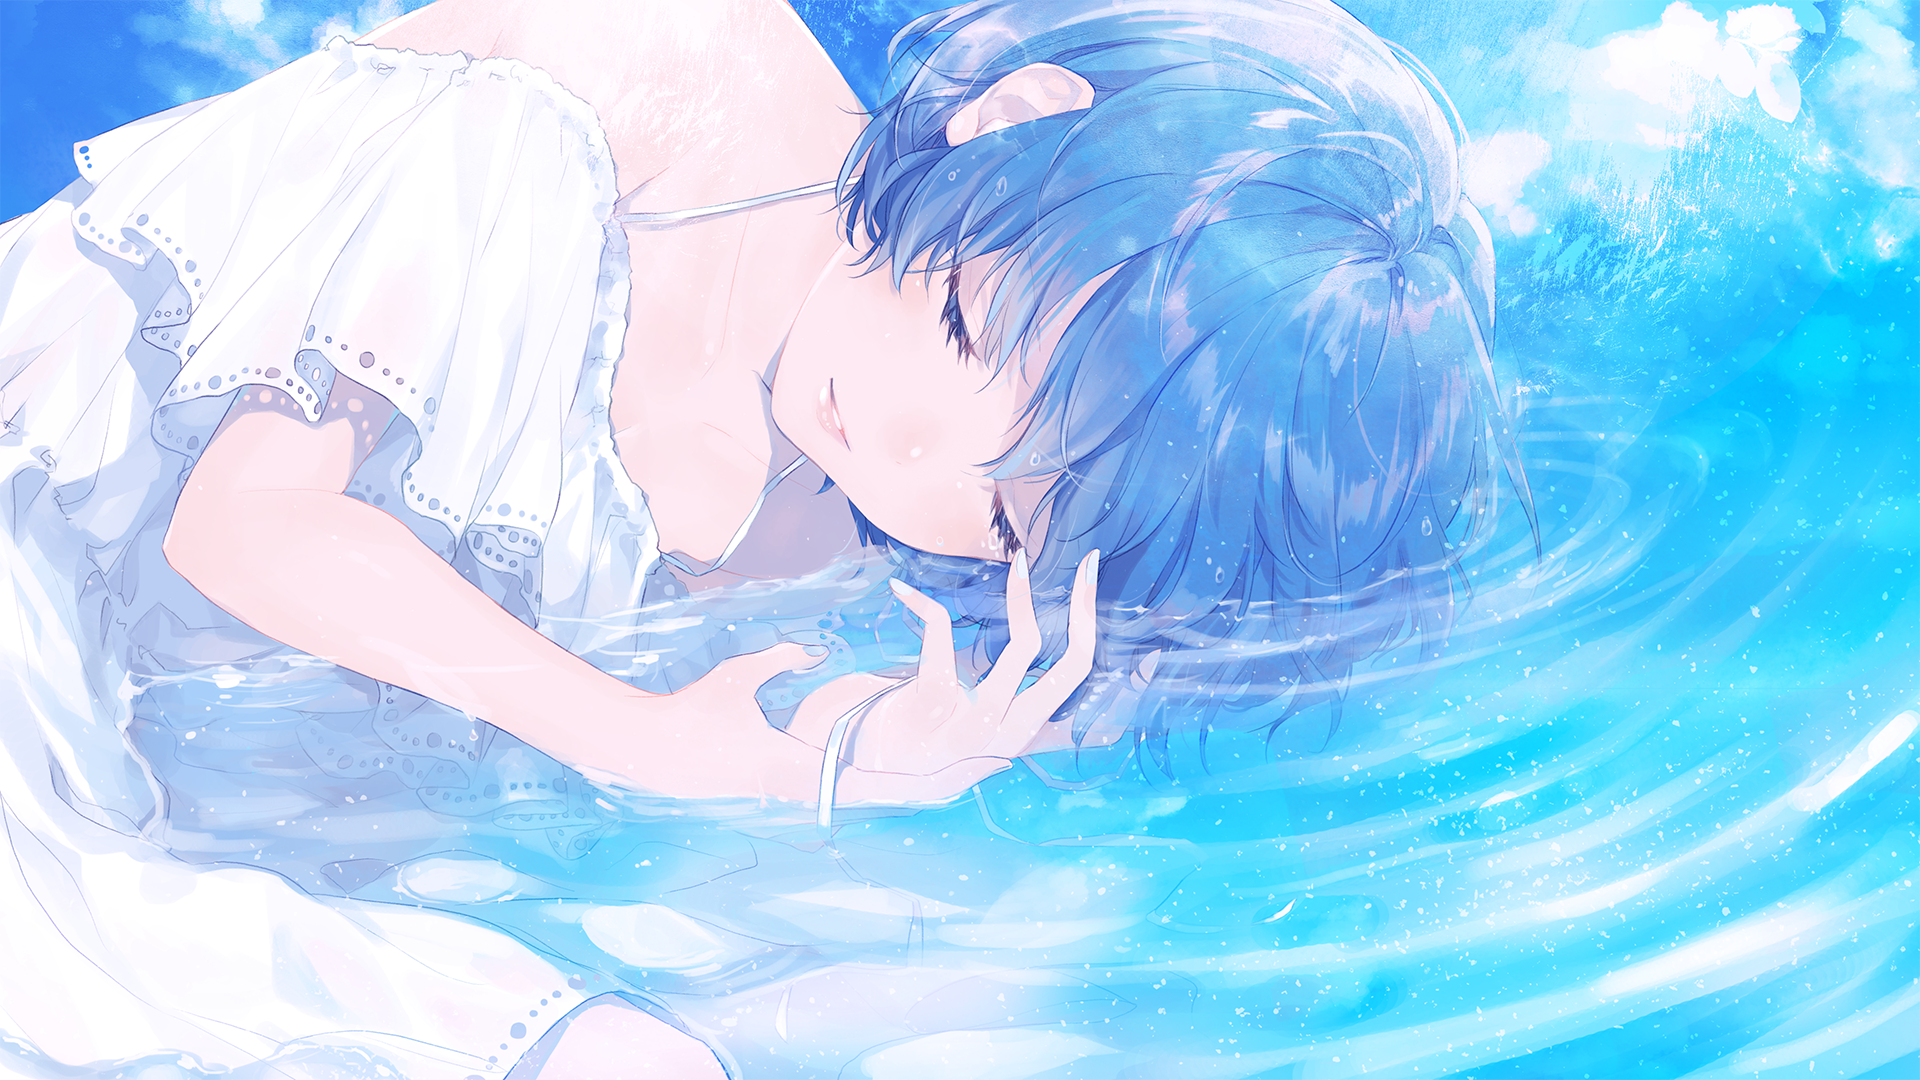 Anime 1920x1080 anime anime girls blue hair short hair in water closed eyes clouds blue nails ribbons waves Sudach Koppe